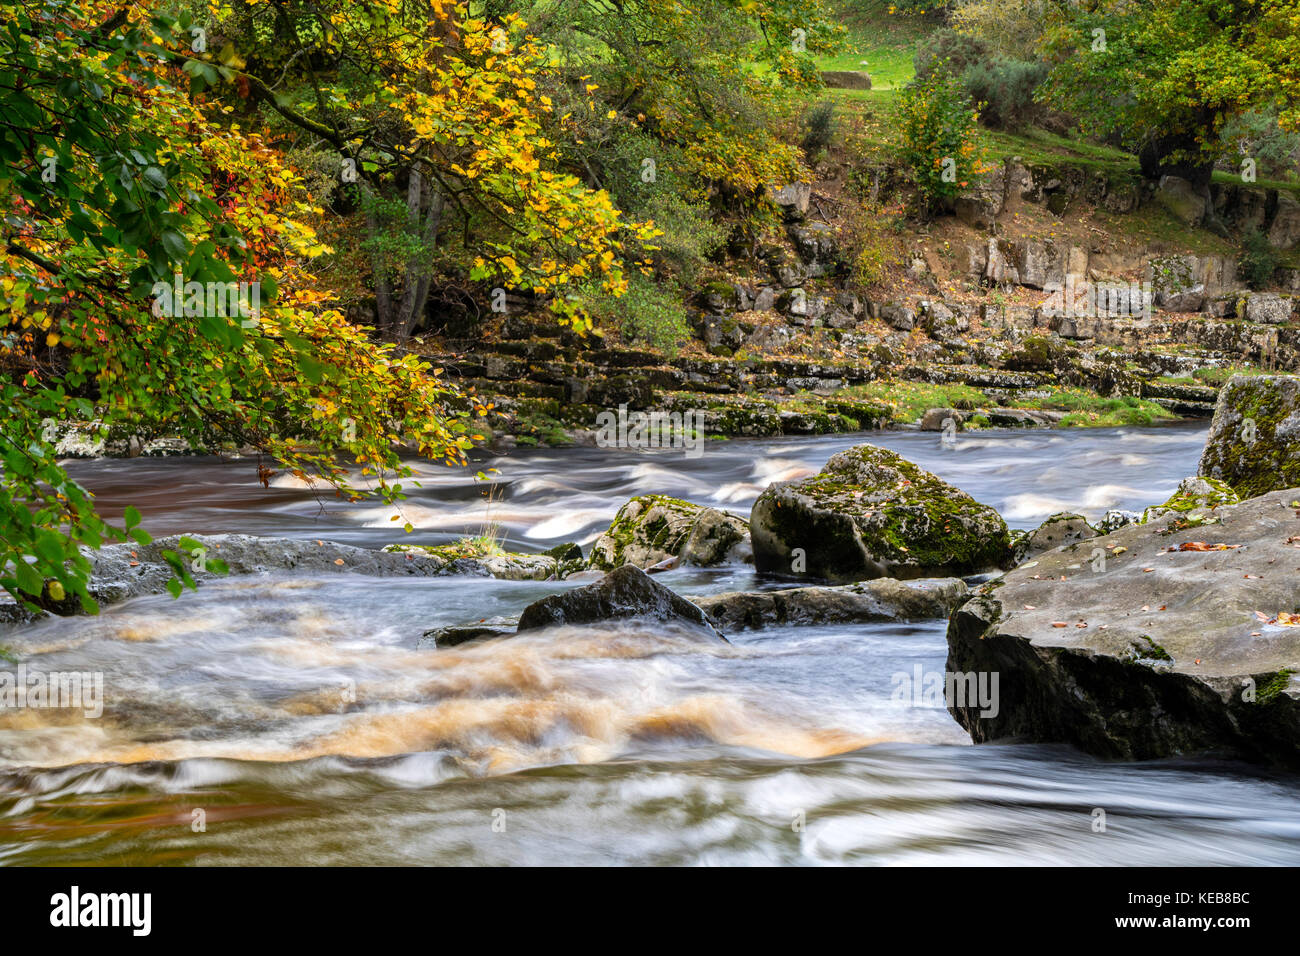 The Meeting of the Rivers Tees and Greta, at the Meeting of the Waters in Autumn, Rokeby, Teesdale, County Durham, - Stock Image